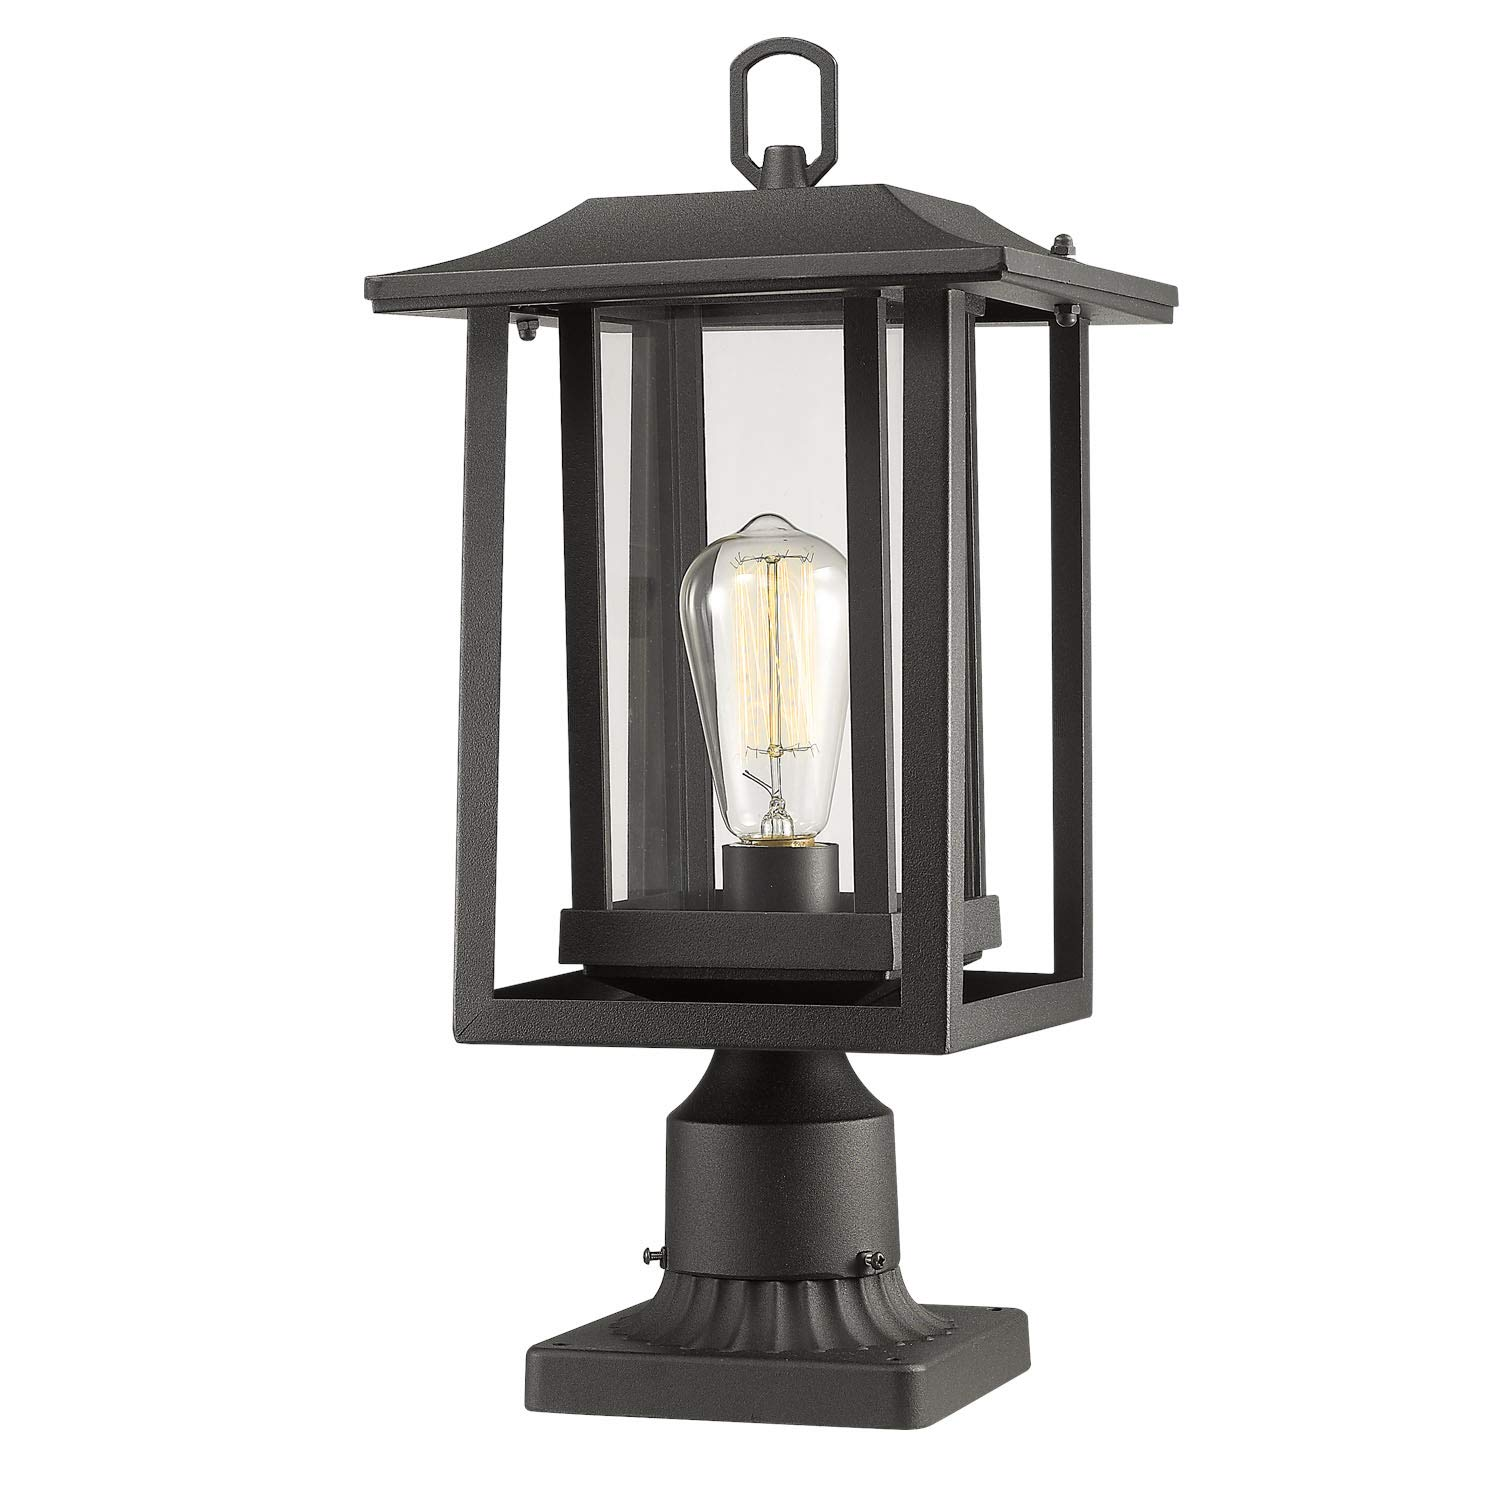 Outdoor Post Light, Beionxii 1-Light Exterior Post Lantern in Matte Black Finish with Clear Glass Panel Shade, Includes Post Base